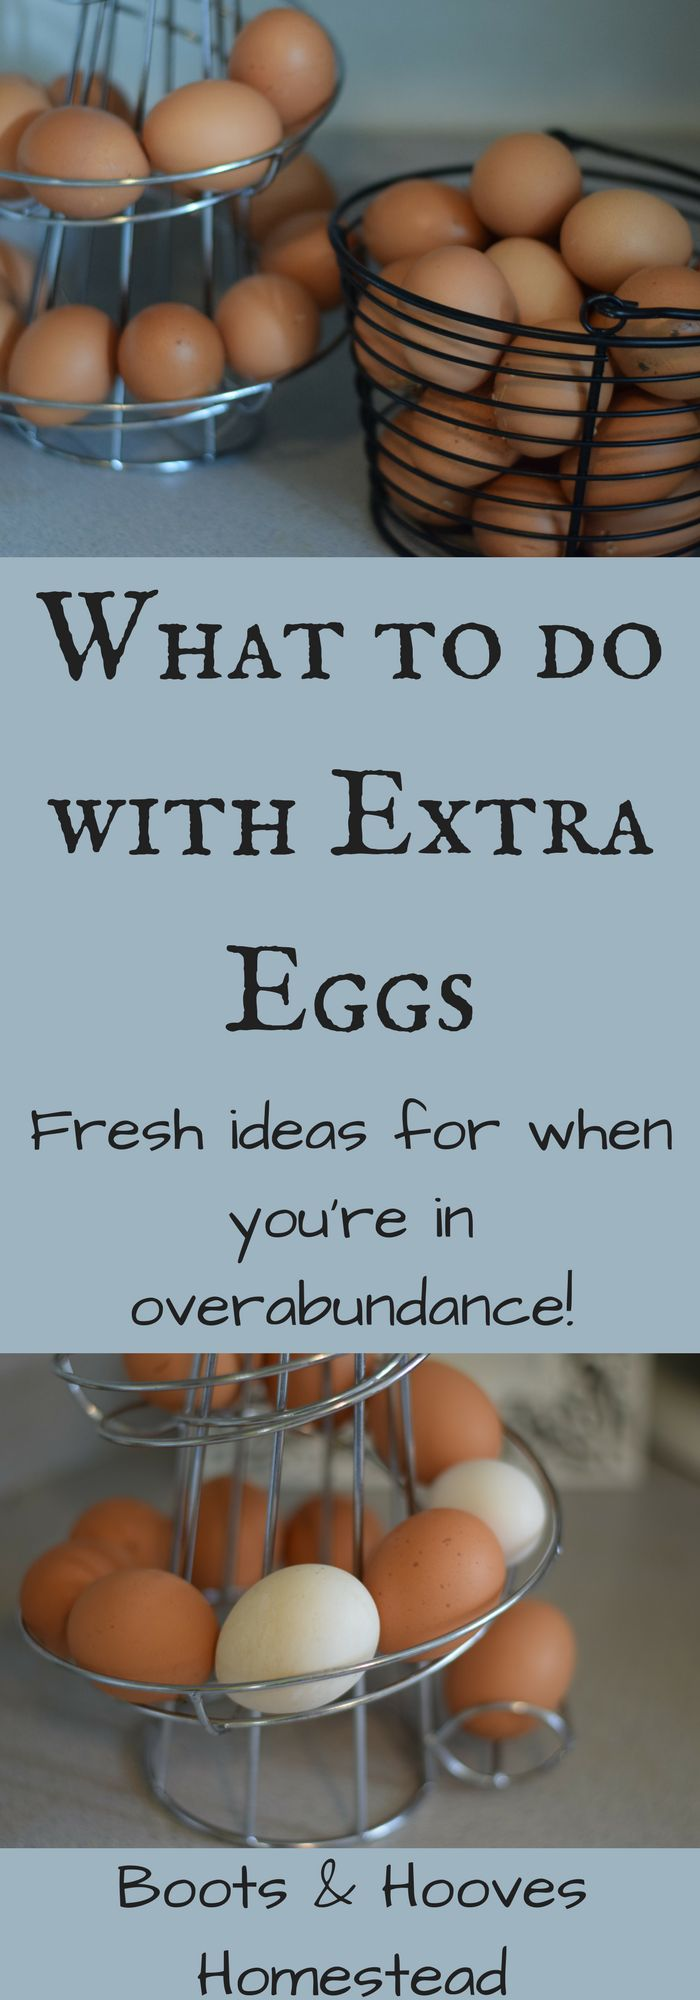 It's that time of year. The time where, for us chicken keepers, our hens our providing us with an abundance of eggs. In fact, we are currently in egg overload around here. But what to do with extra eggs? We have sold some and even given some away, but our chickens are still producing extremely …